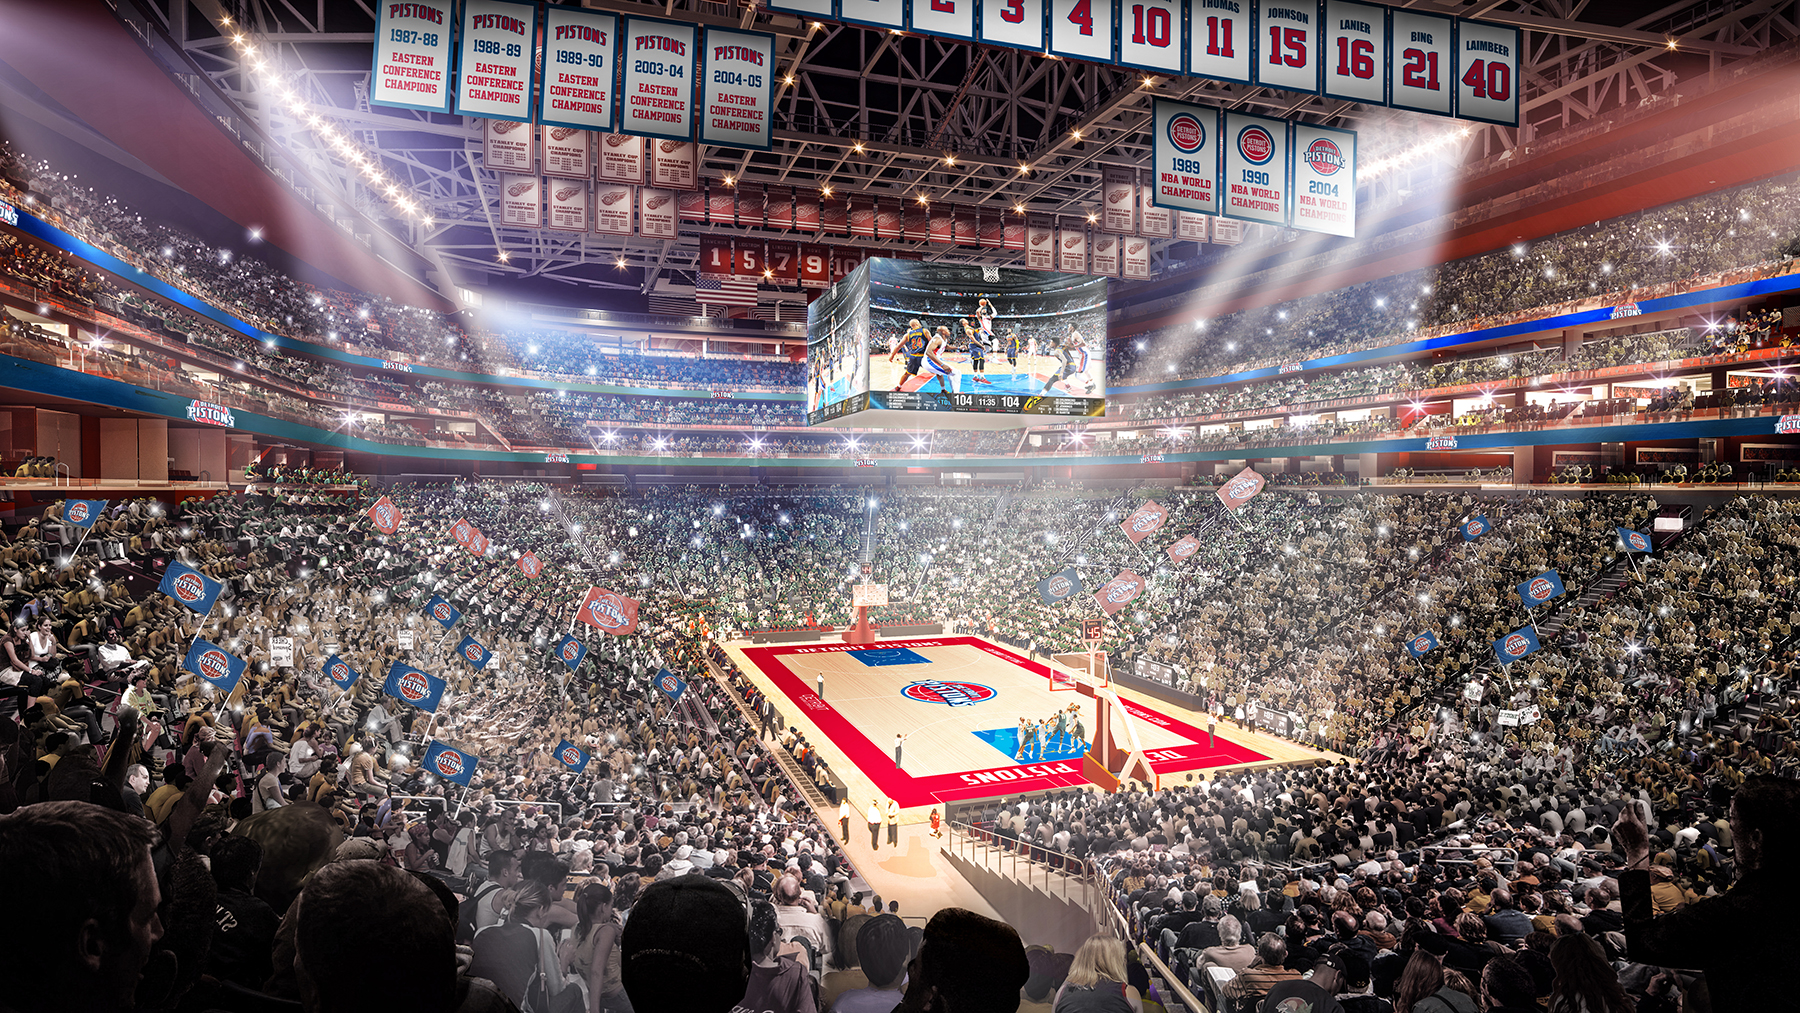 It's Official: The Pistons will be sharing Little Caesars Arena with the Red Wings